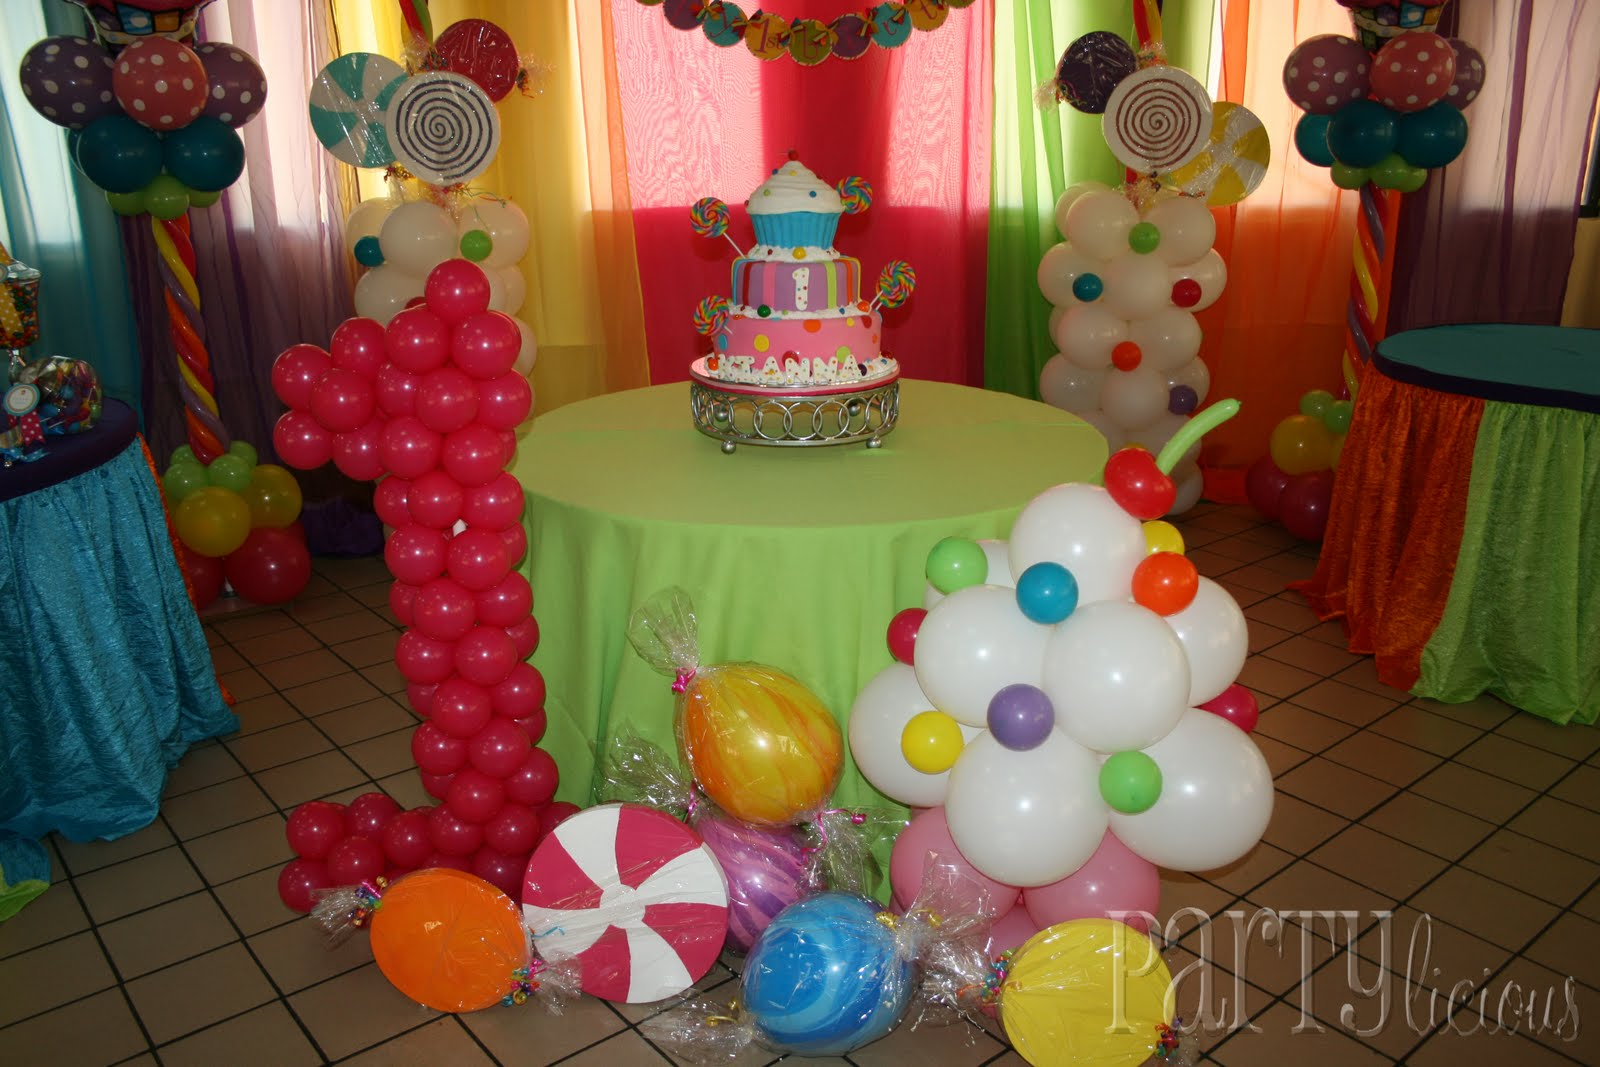 Partylicious events pr sweet 1st birthday candy cupcakes for Balloon decoration ideas for 1st birthday party